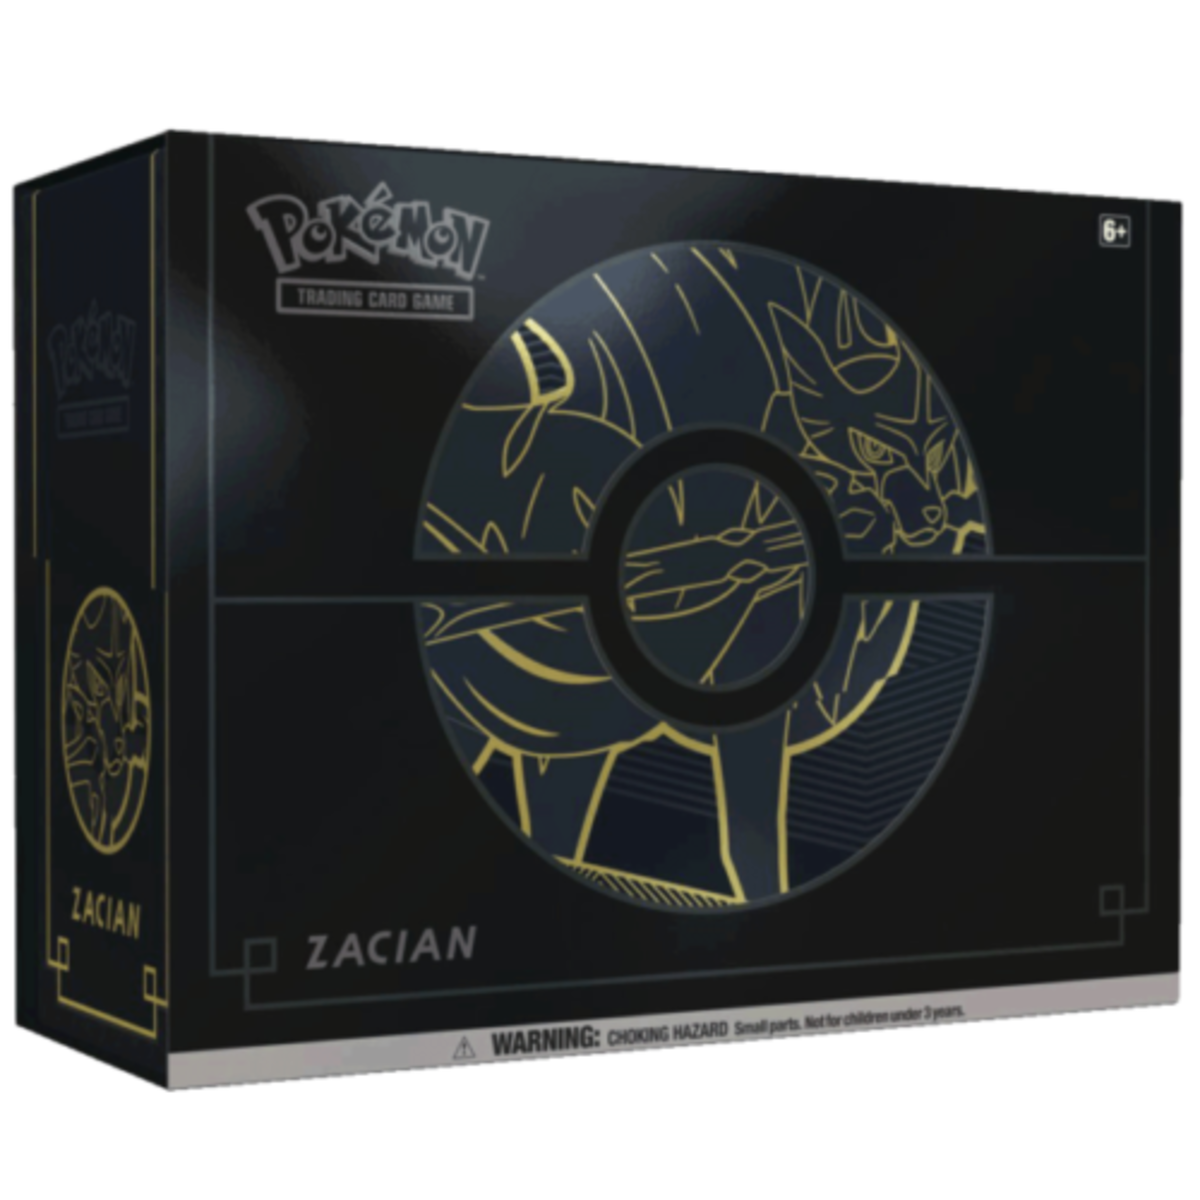 The Pokémon Company has made it clear that they are interested in promoting Zacian as an iconic modern Pokémon character.